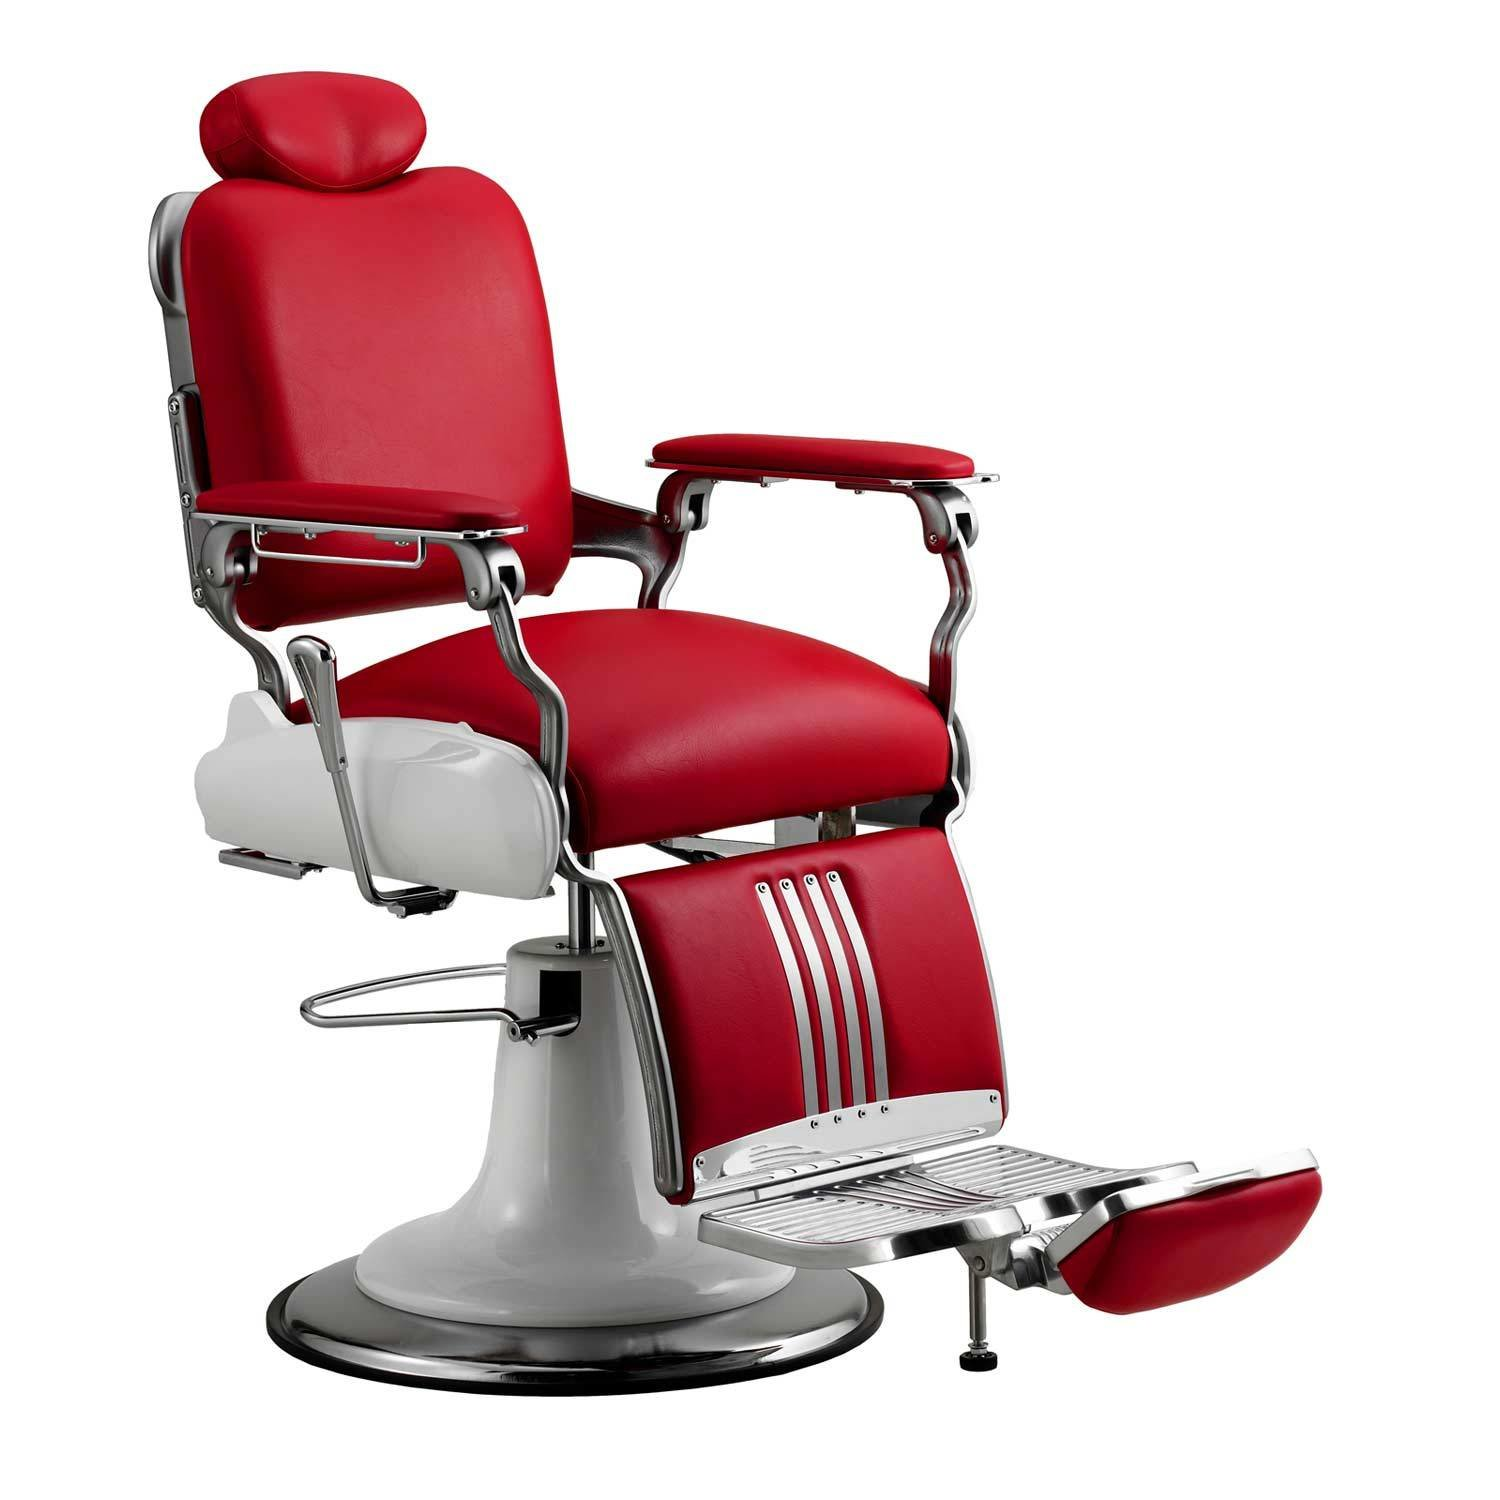 The Best Koken Legacy Barber Chair Takara Belmont Bb 0090H Pictures